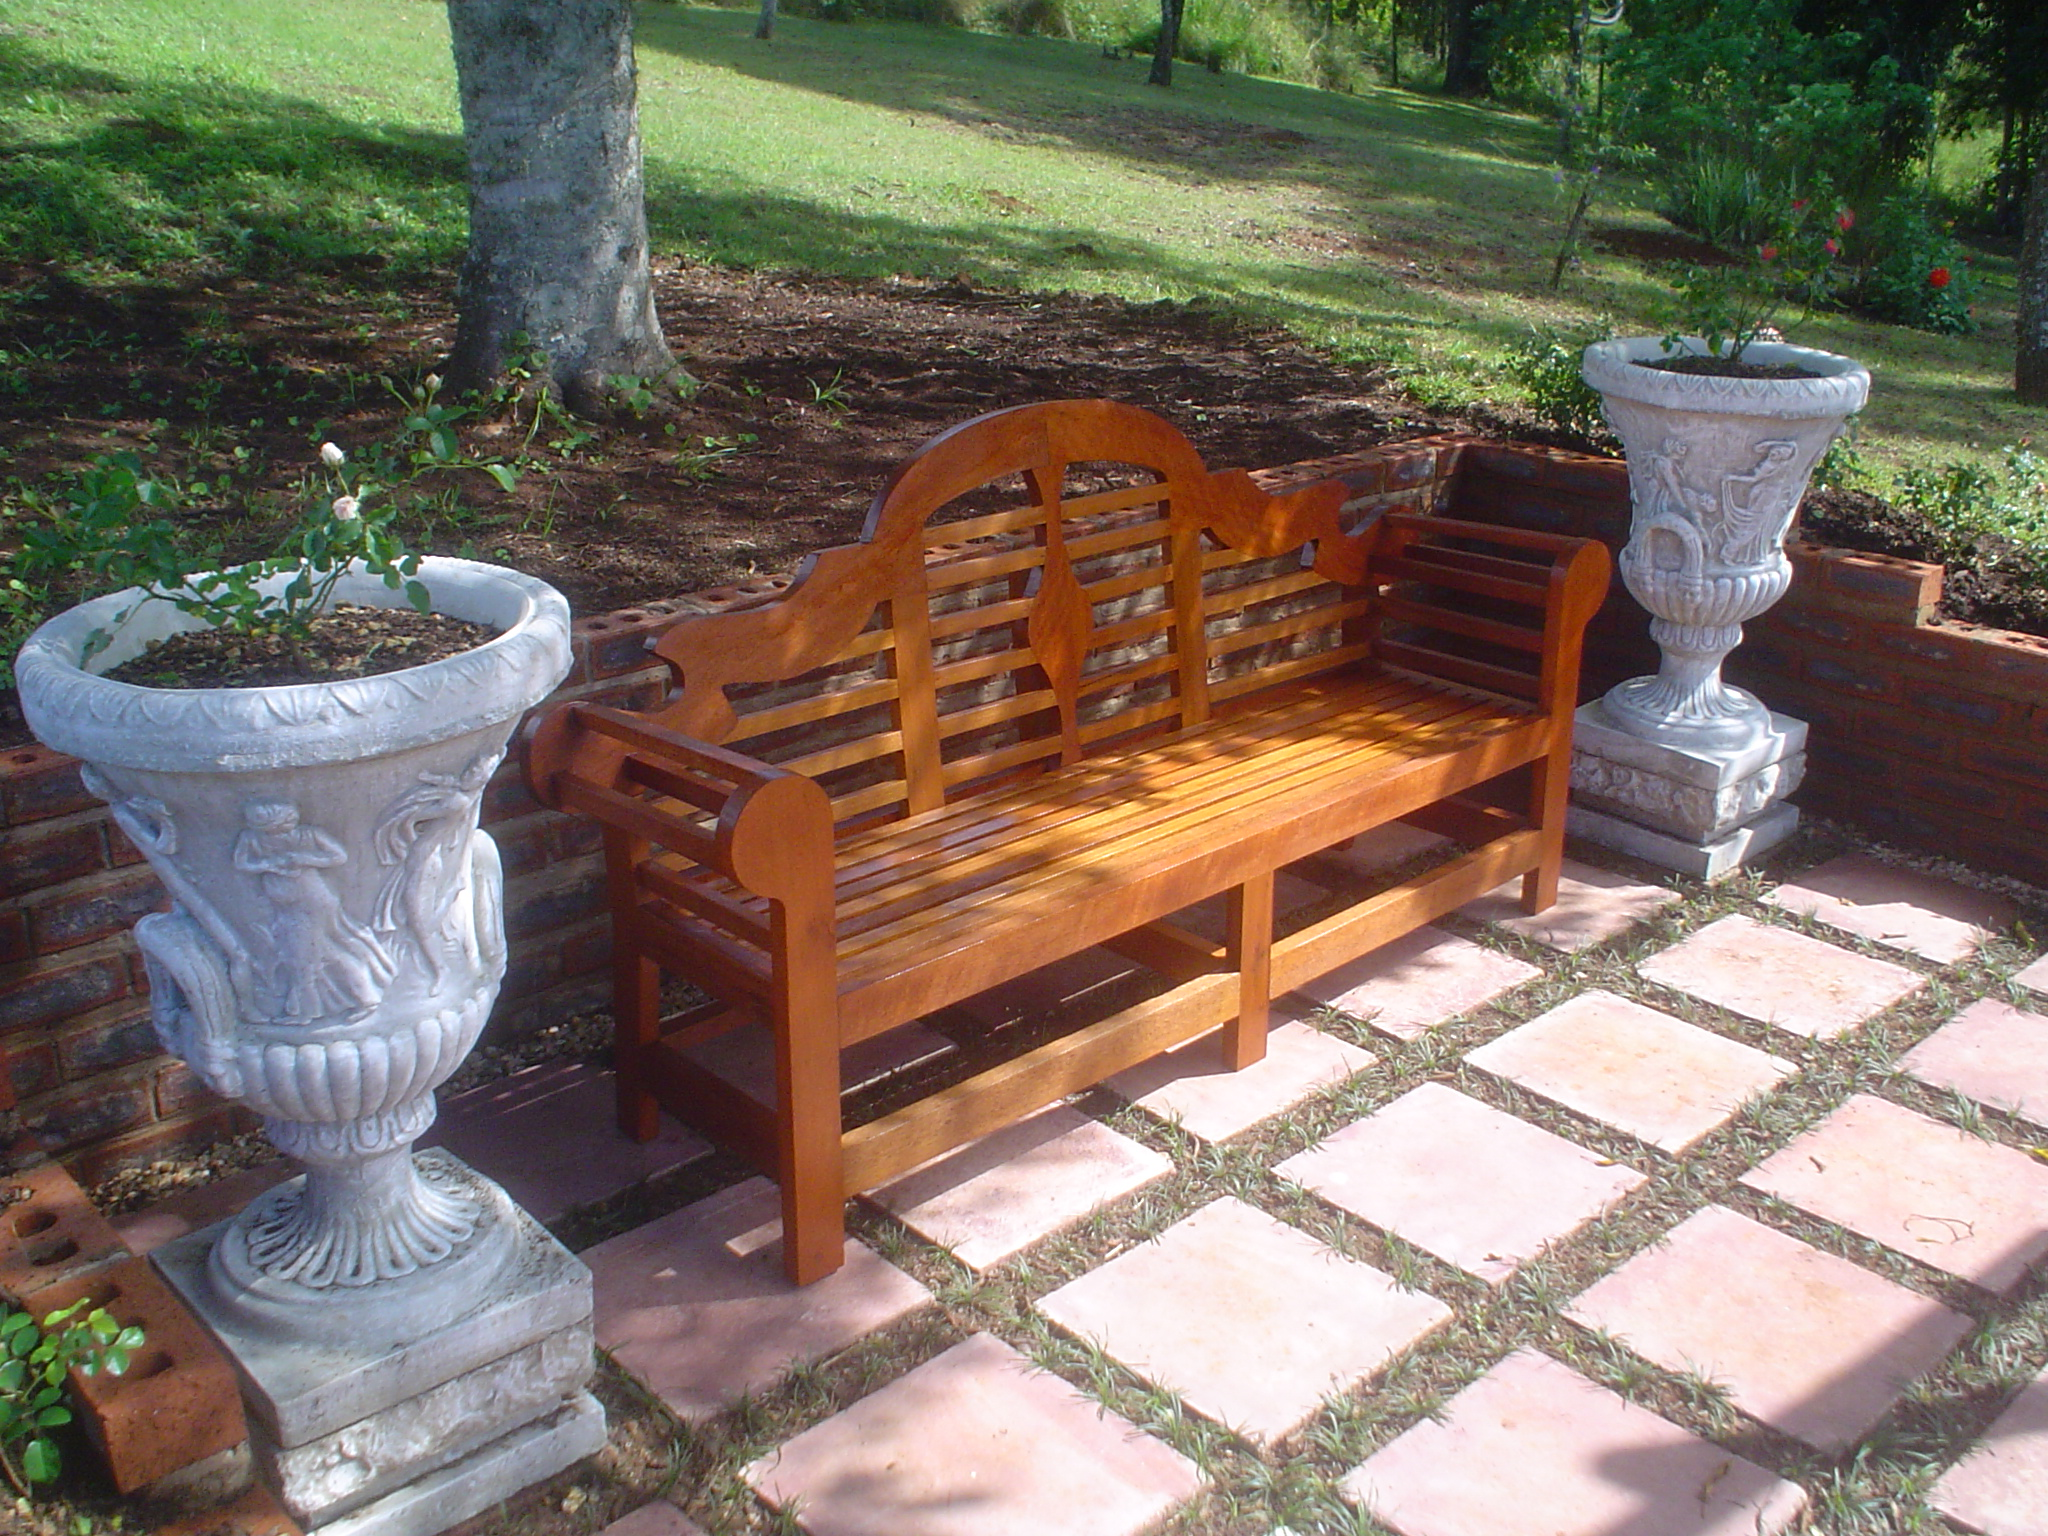 Pictures Of Sundecks Stairs And Benches: Outdoor Garden And Patio Furniture